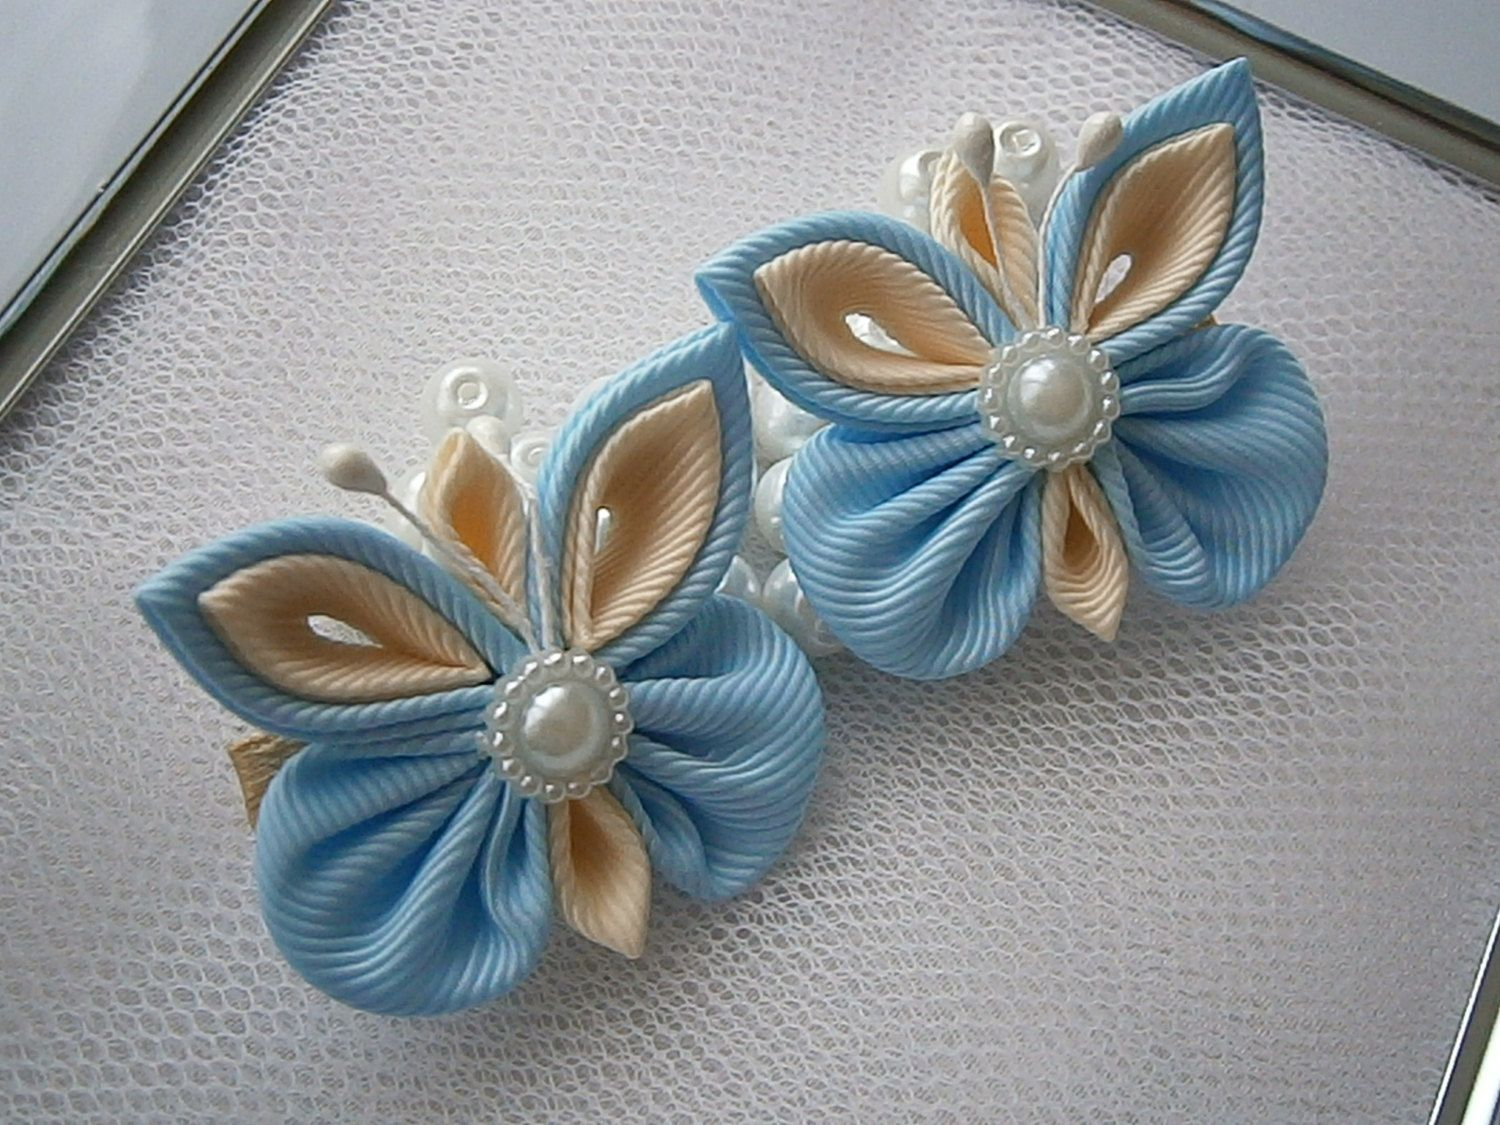 Butterfly hair accessories for weddings uk - White Handmade Kanzashi Girls Women Ladies Hair Clips Bows Slides Pins Buy In Uk Shipping Worldwide Bridesmaid Wedding Bridal Gift Present Butterfly